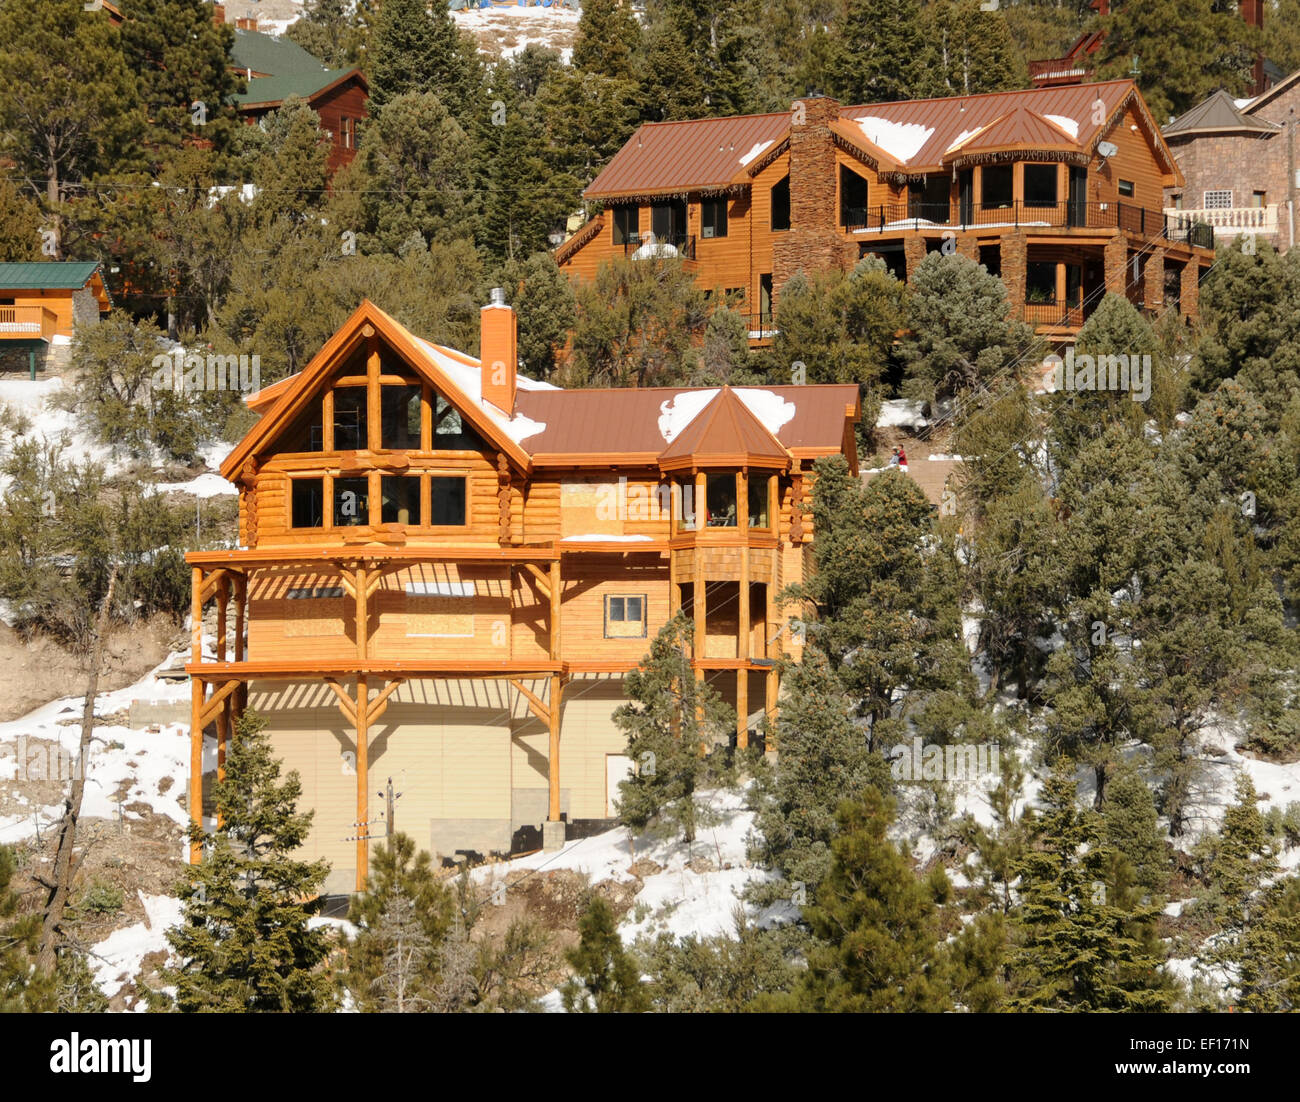 Lake Luxury Log Homes: Luxury Log Cabins On A Snowy Mountain Slope Stock Photo